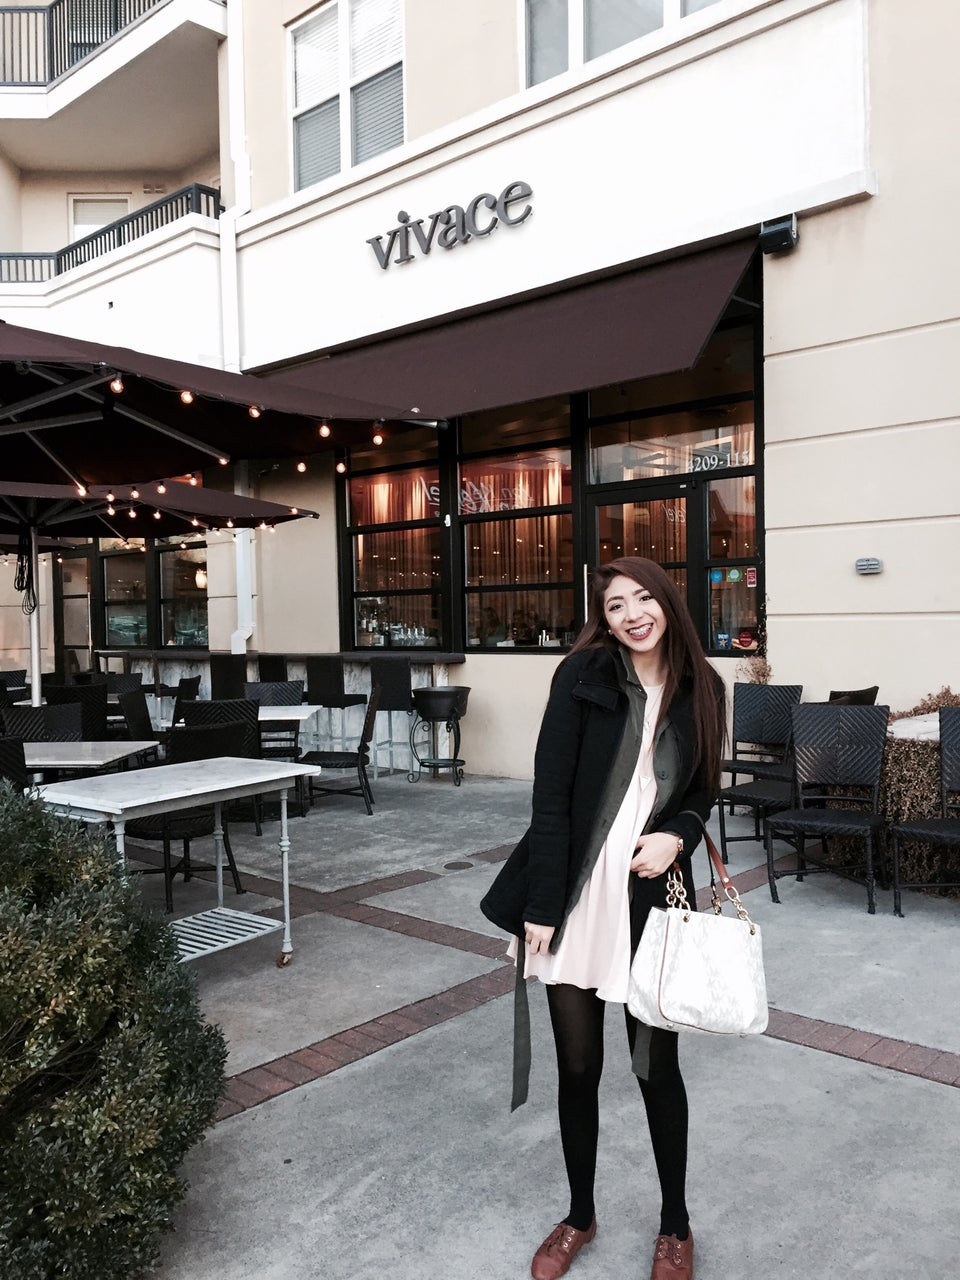 Photo of Vivace